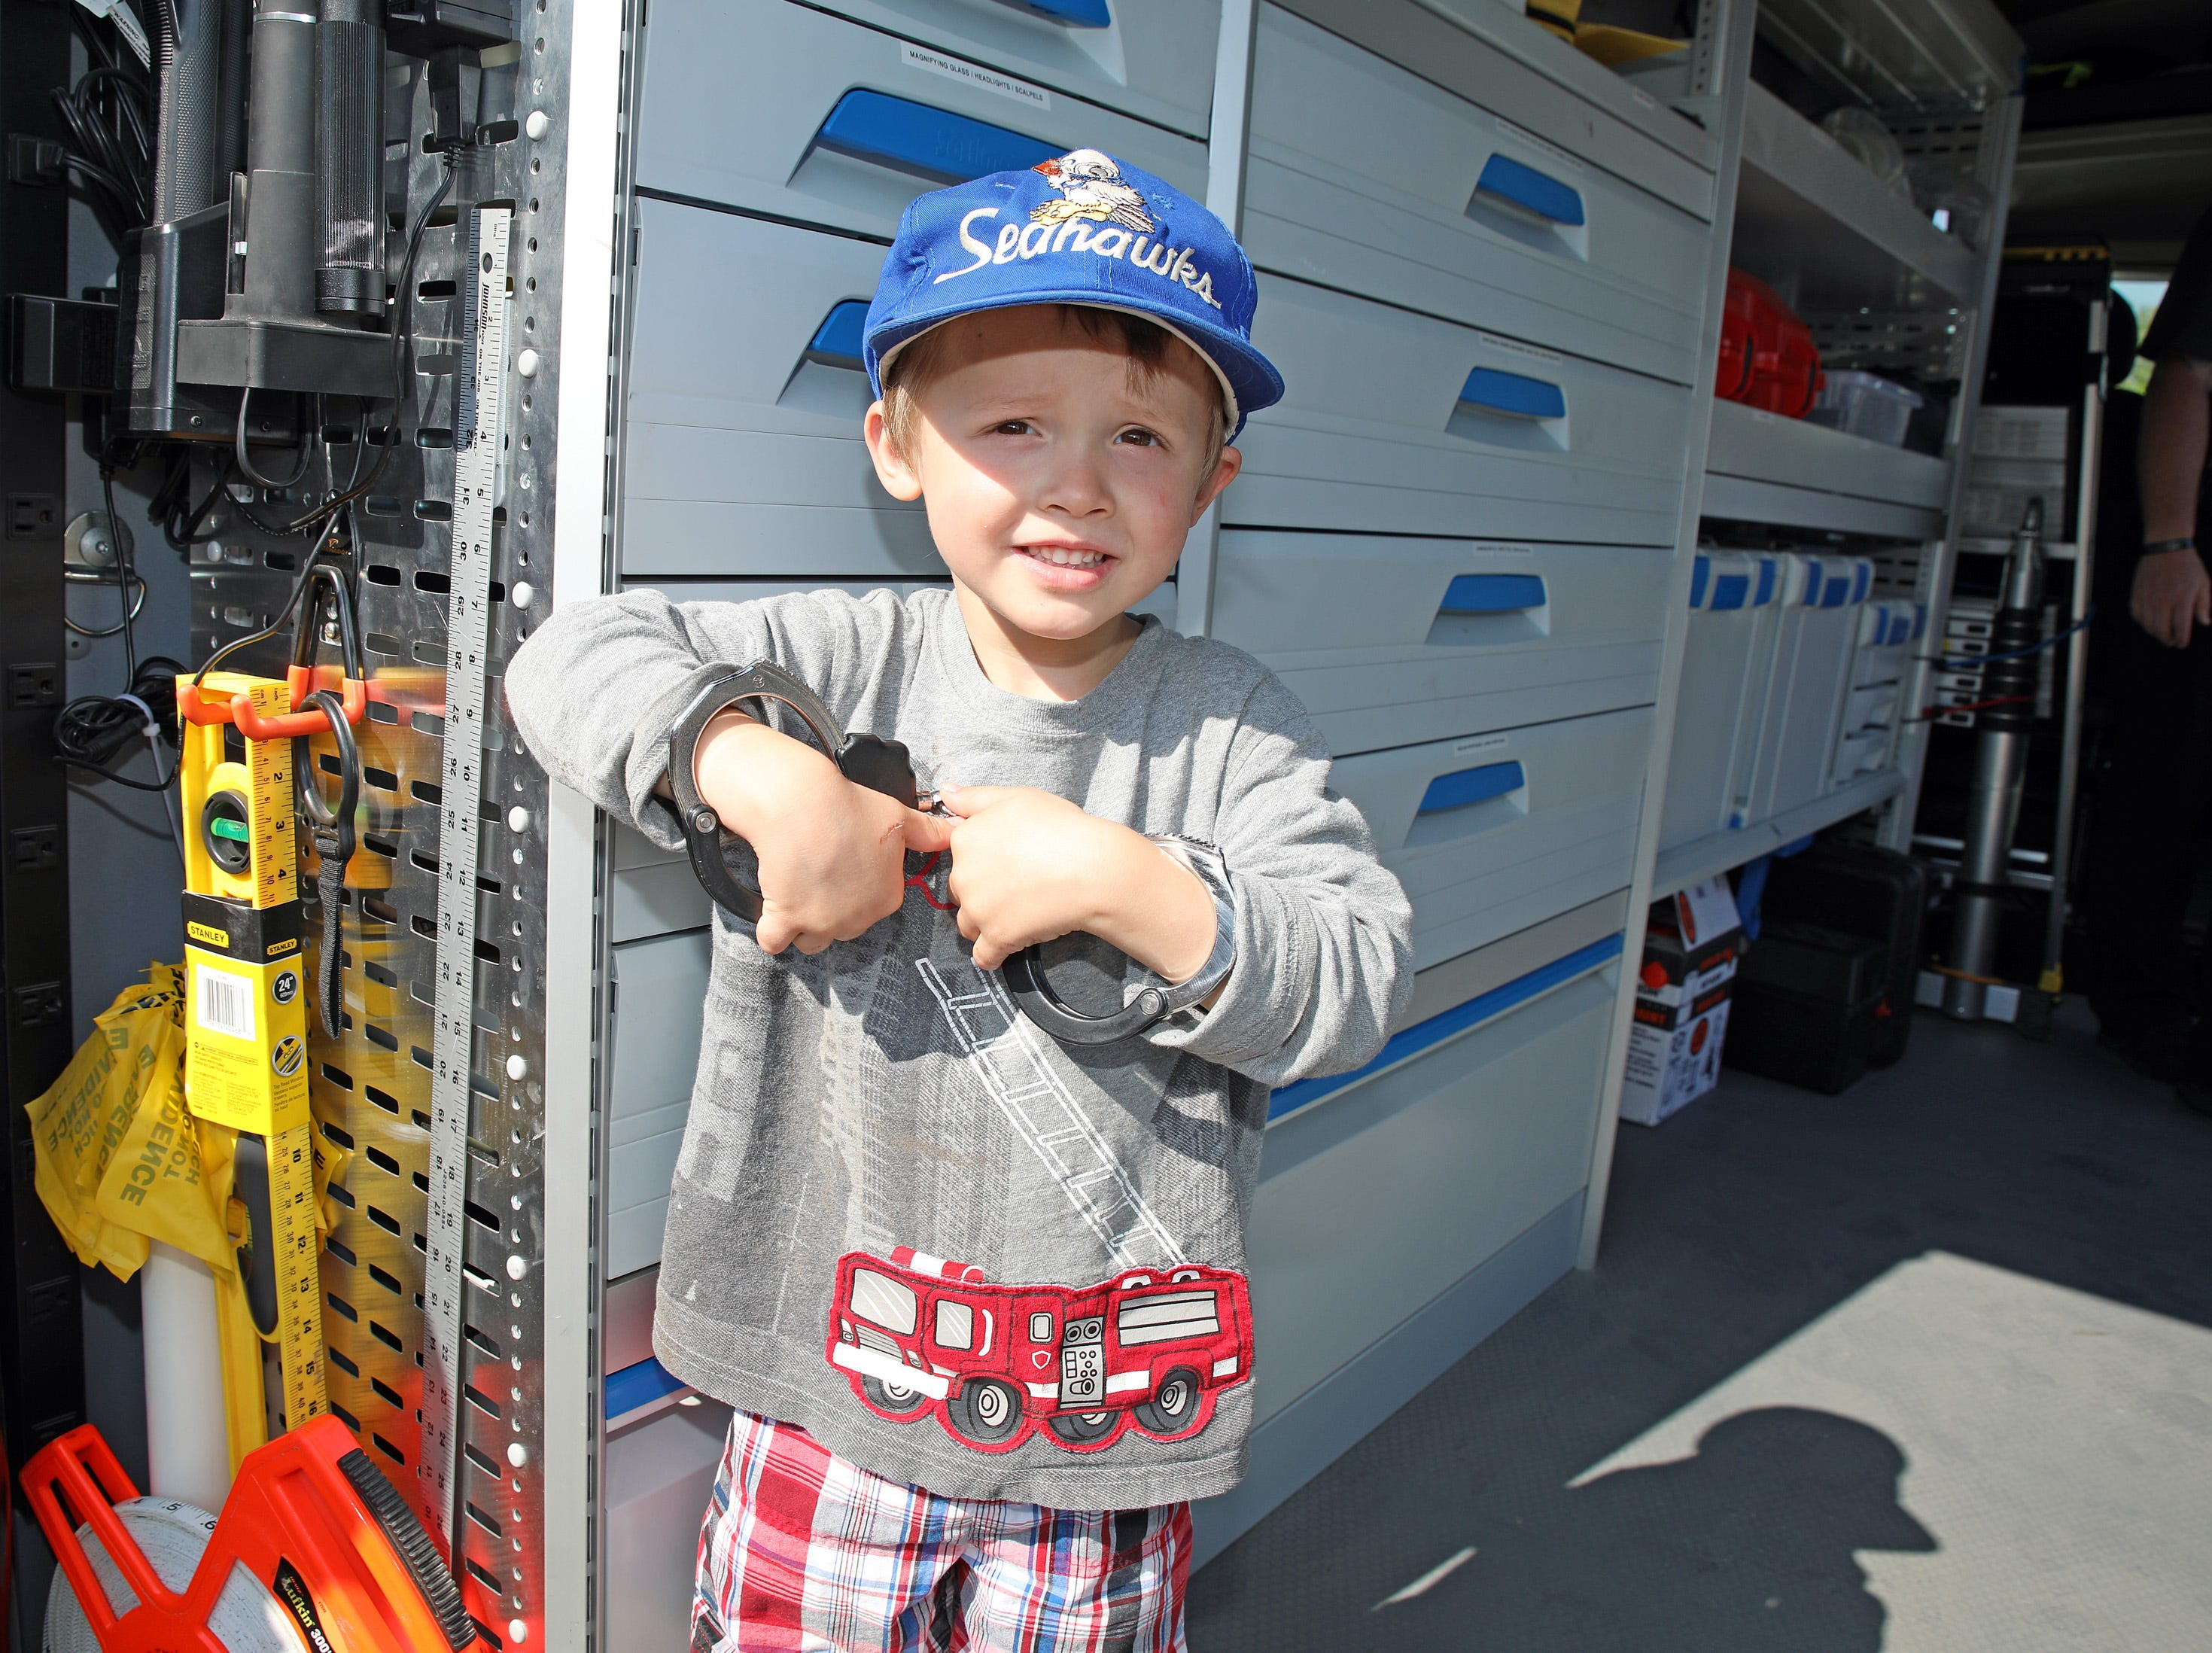 Lincoln Schopf, 3, of Ankeny tries on some handcuffs during the Ankeny Police Week Community Picnic on Tuesday, May 14, 2019 at the Ankeny Police Headquarters located at 411 SW Ordnance Road. The event featured a tour of the police station, magician Jonathon May, free Chick Fil-A sandwiches for the first 1,000 guests, free Kona Ice, temporary tattoos, and a great opportunity to meet the officers who protect and serve the city of Ankeny.